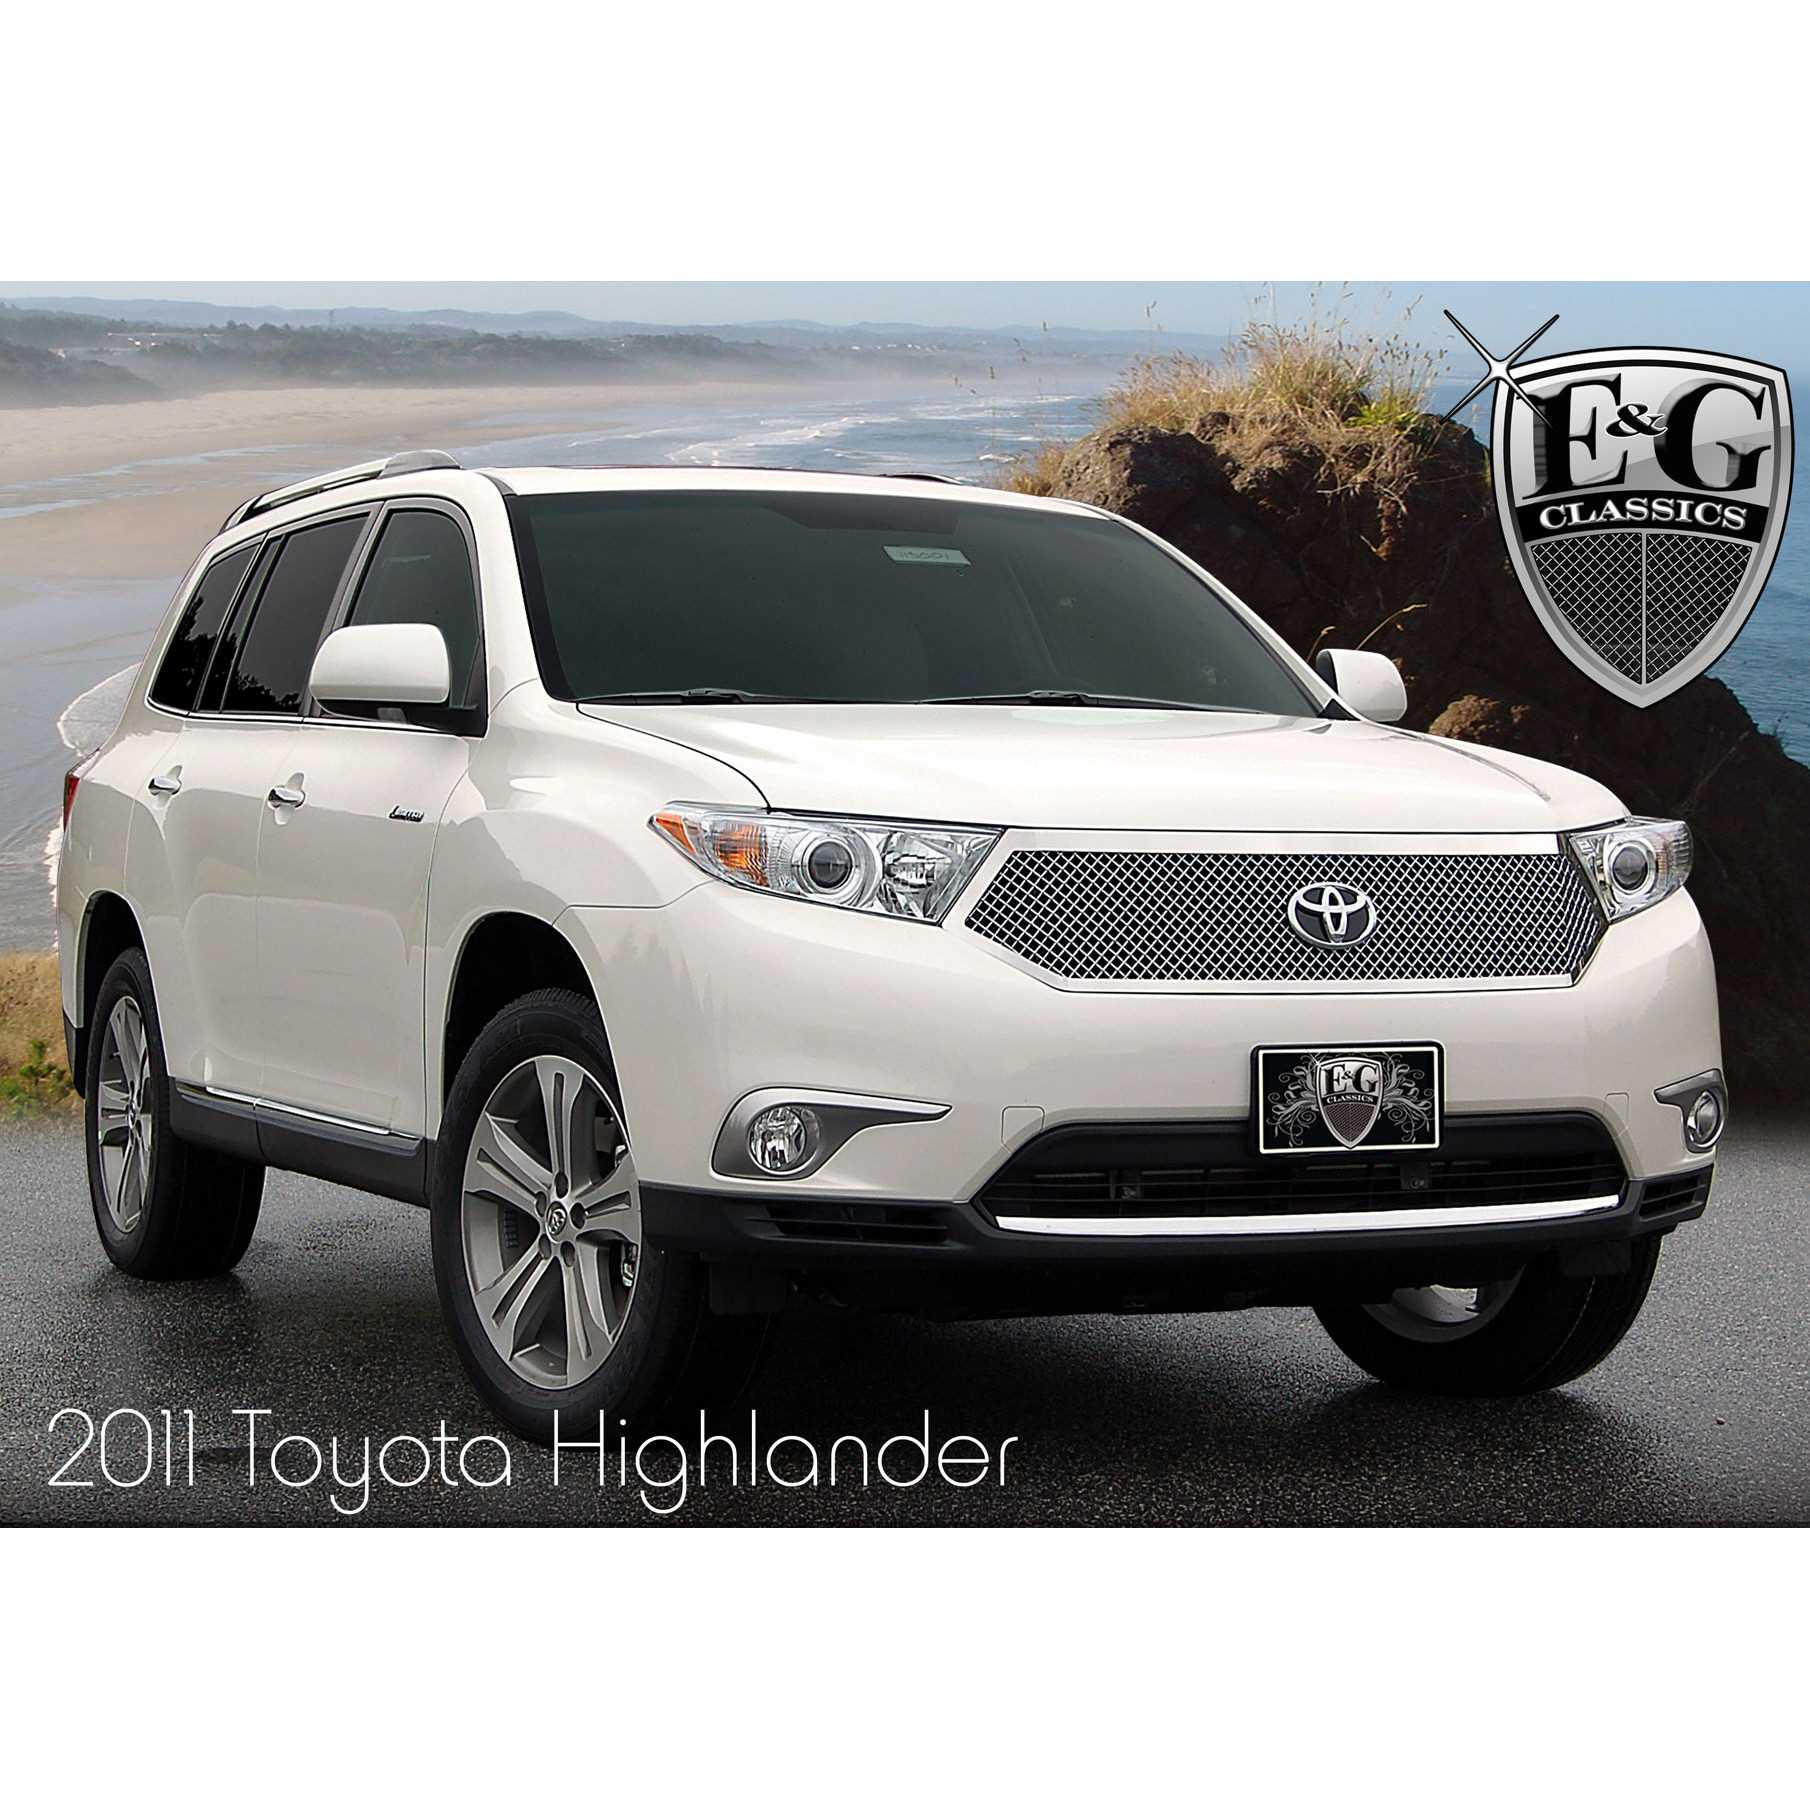 Pictures Of Toyota Highlander: Custom Grills For Your Car, Truck, Jeep